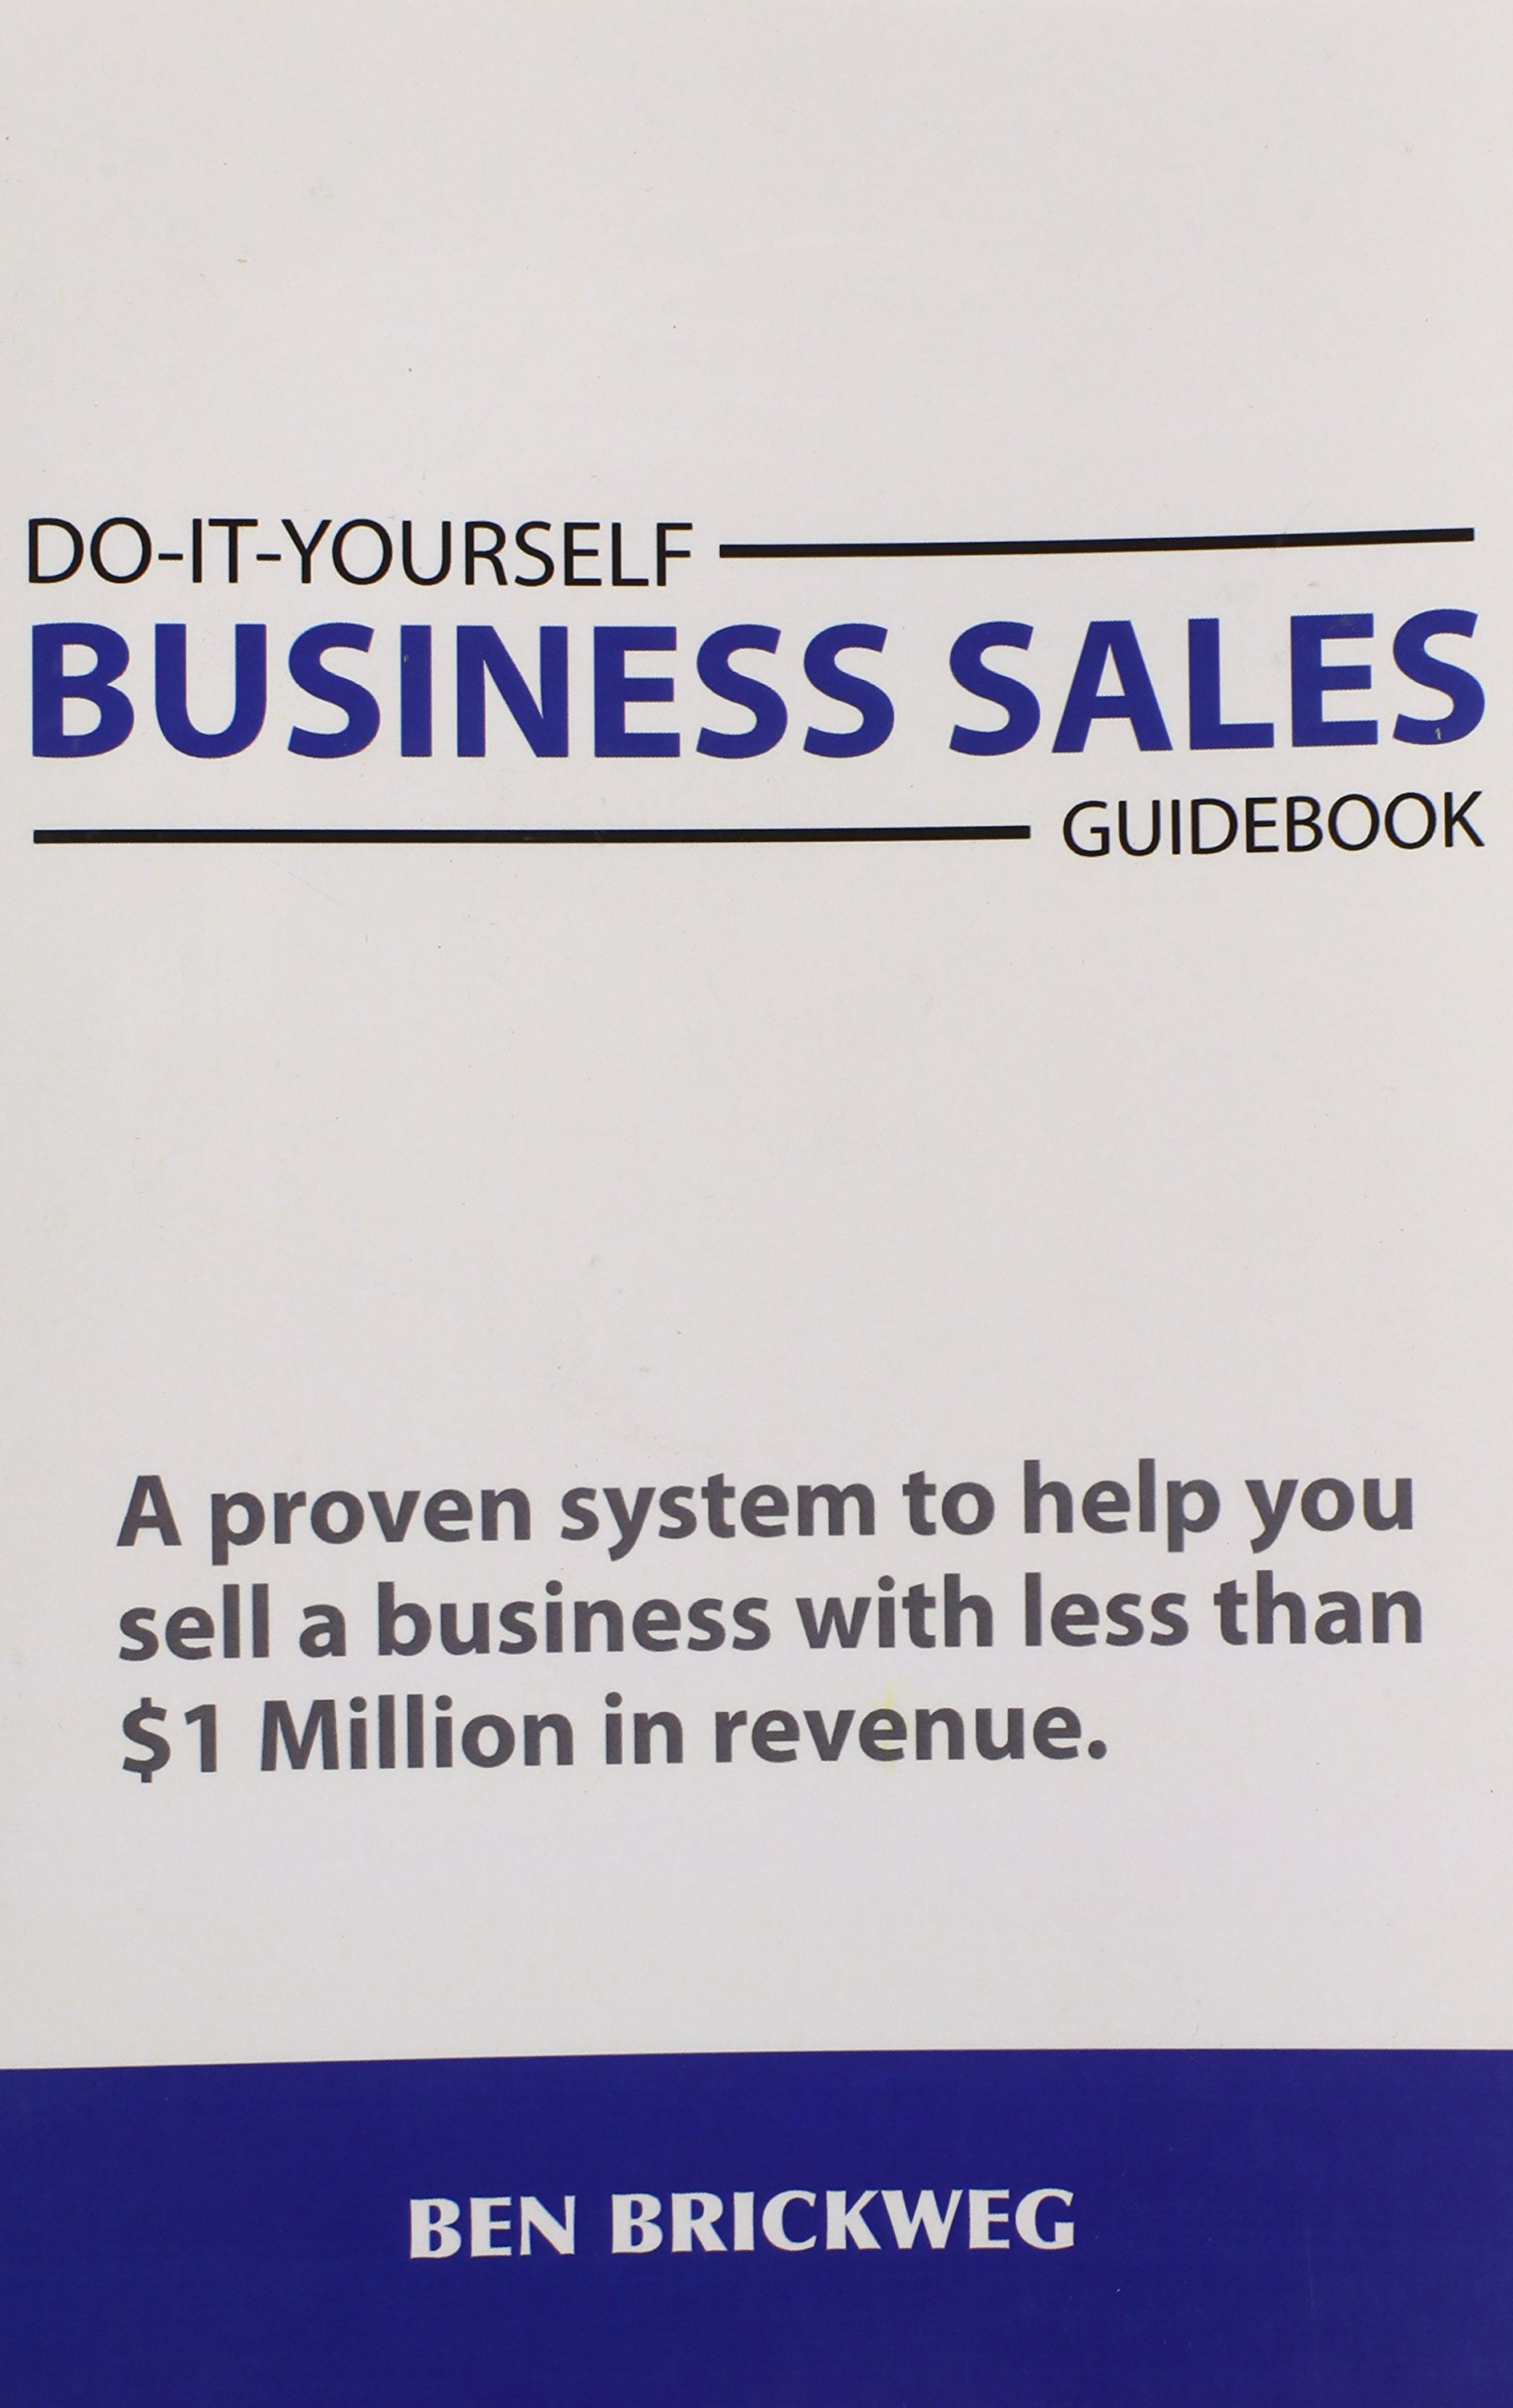 Do It Yourself Business Sales Guidebook A Proven System To Help You Learn More At Com Sell Small With Less Than 1 Million In Revenue Ben Brickweg